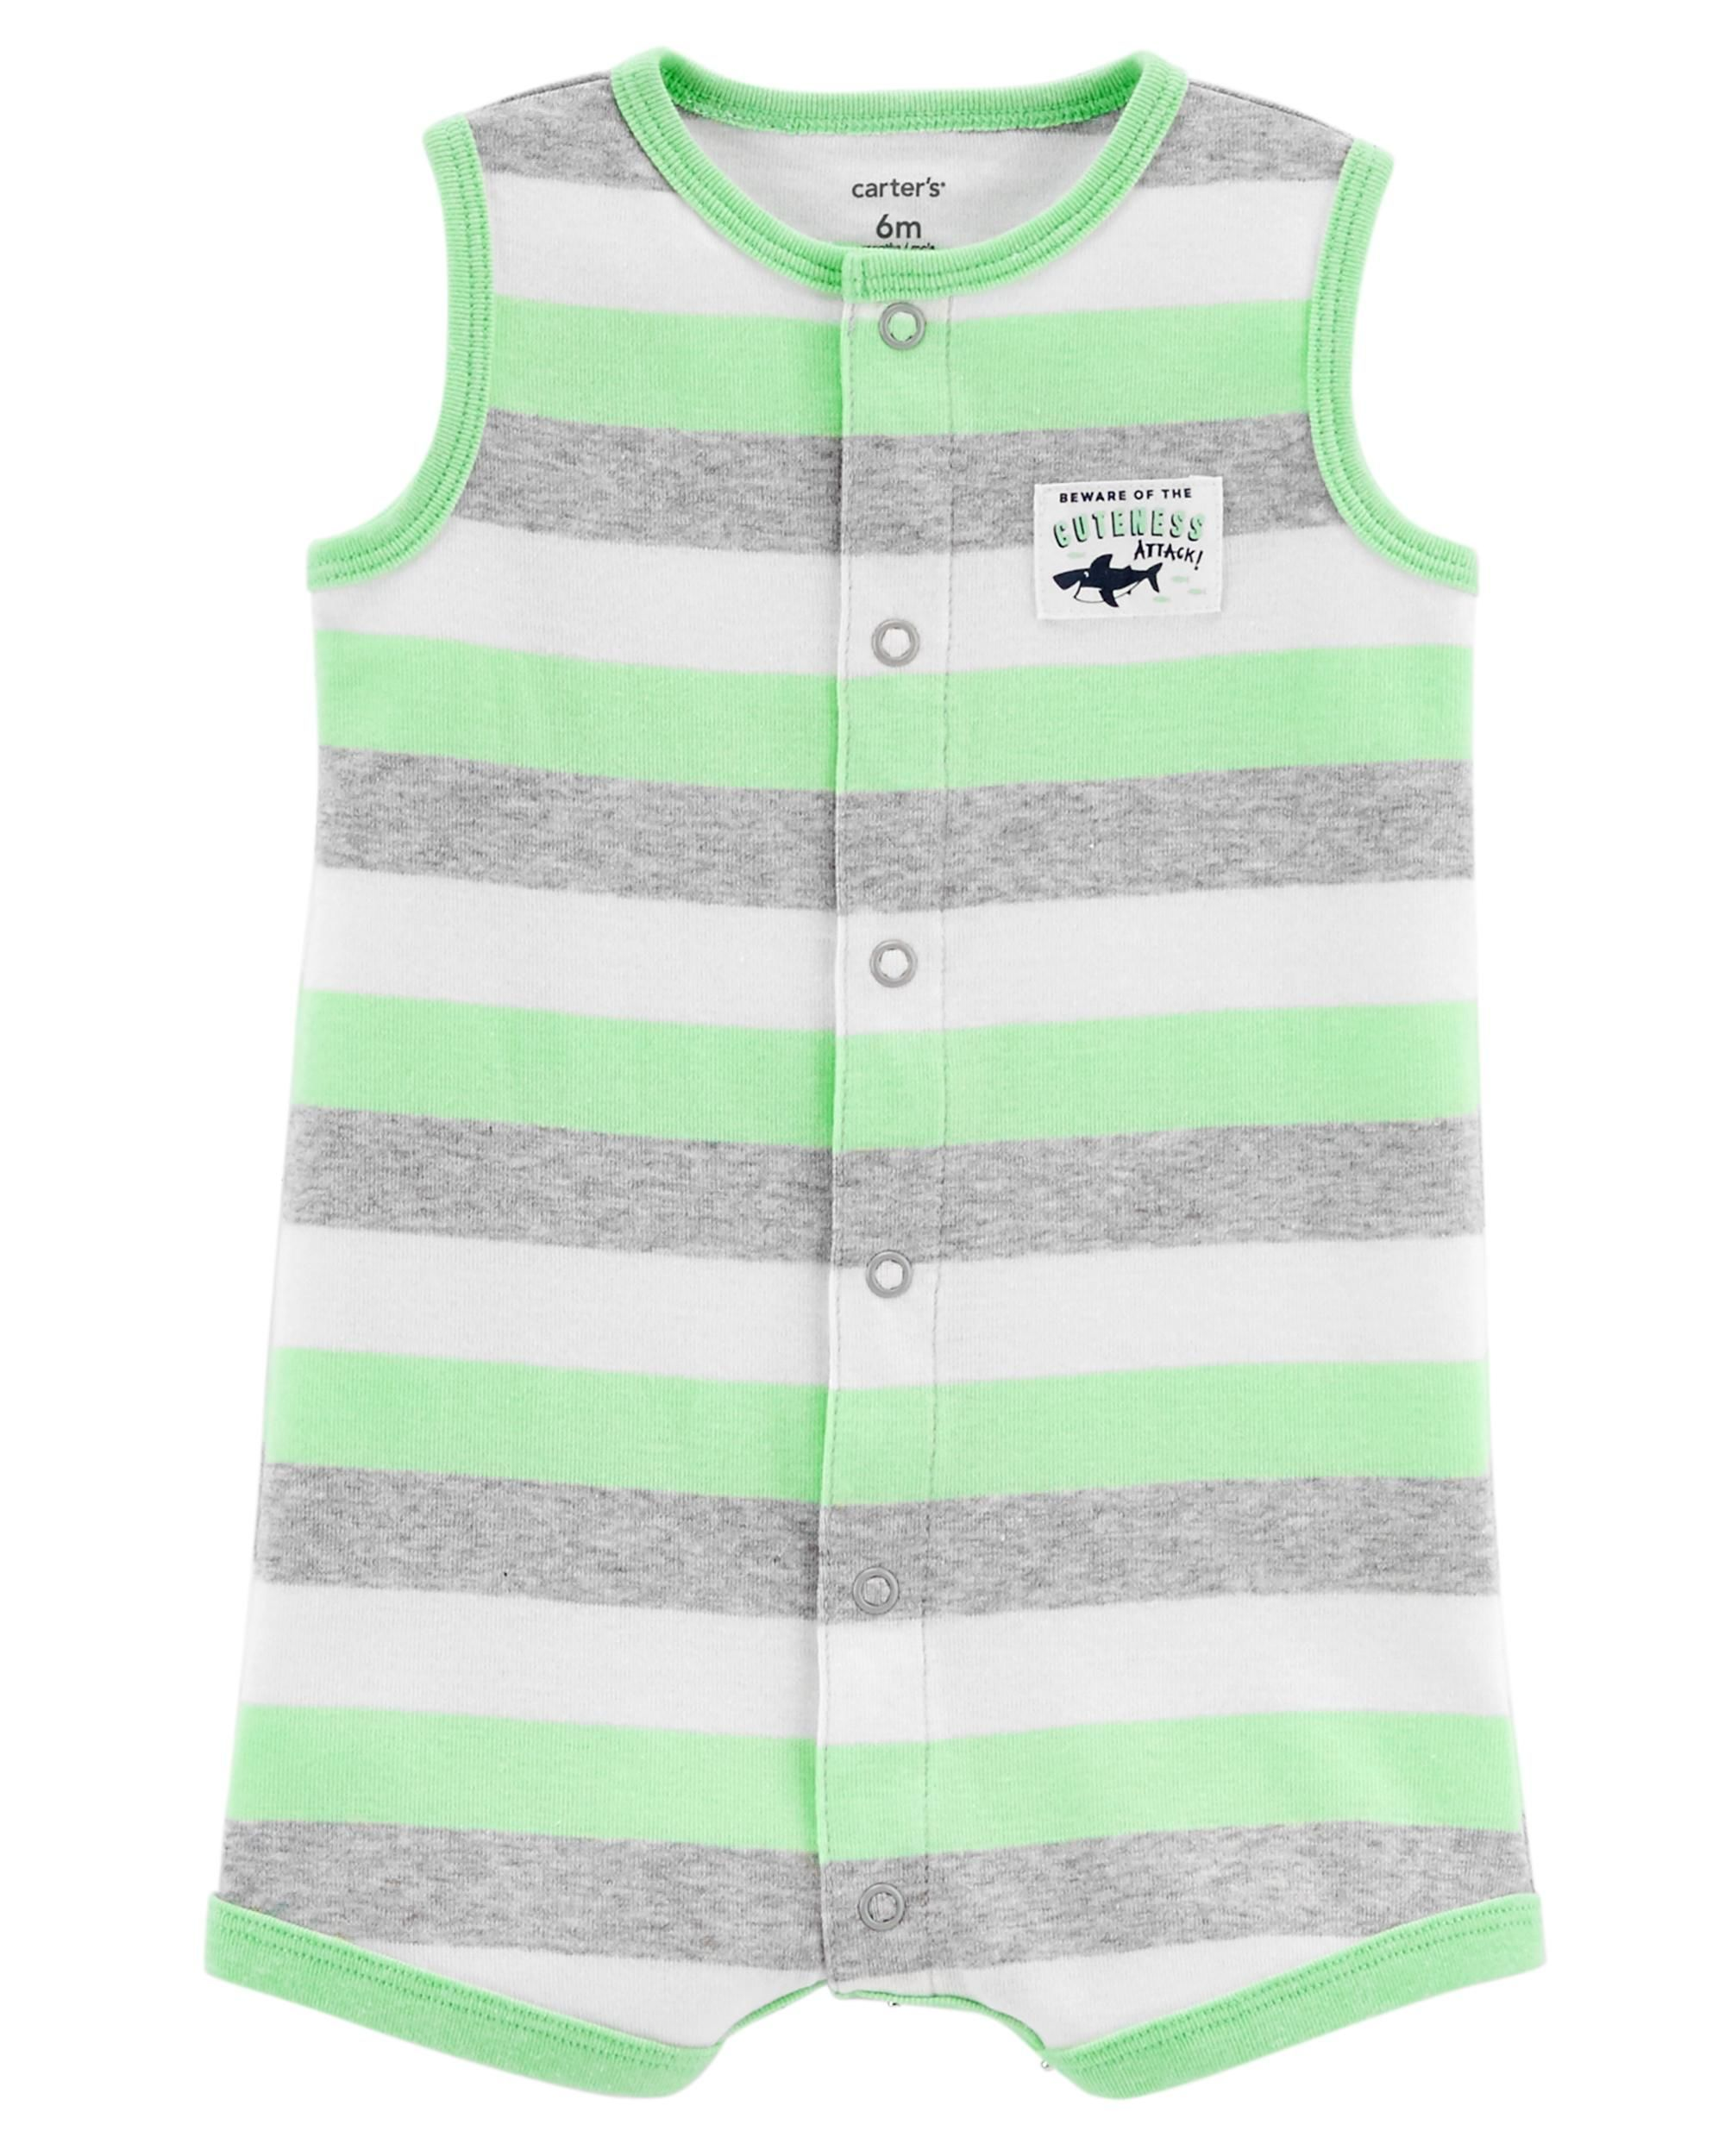 Carters Baby Boys 2 Pack Cotton Romper Creeper Set